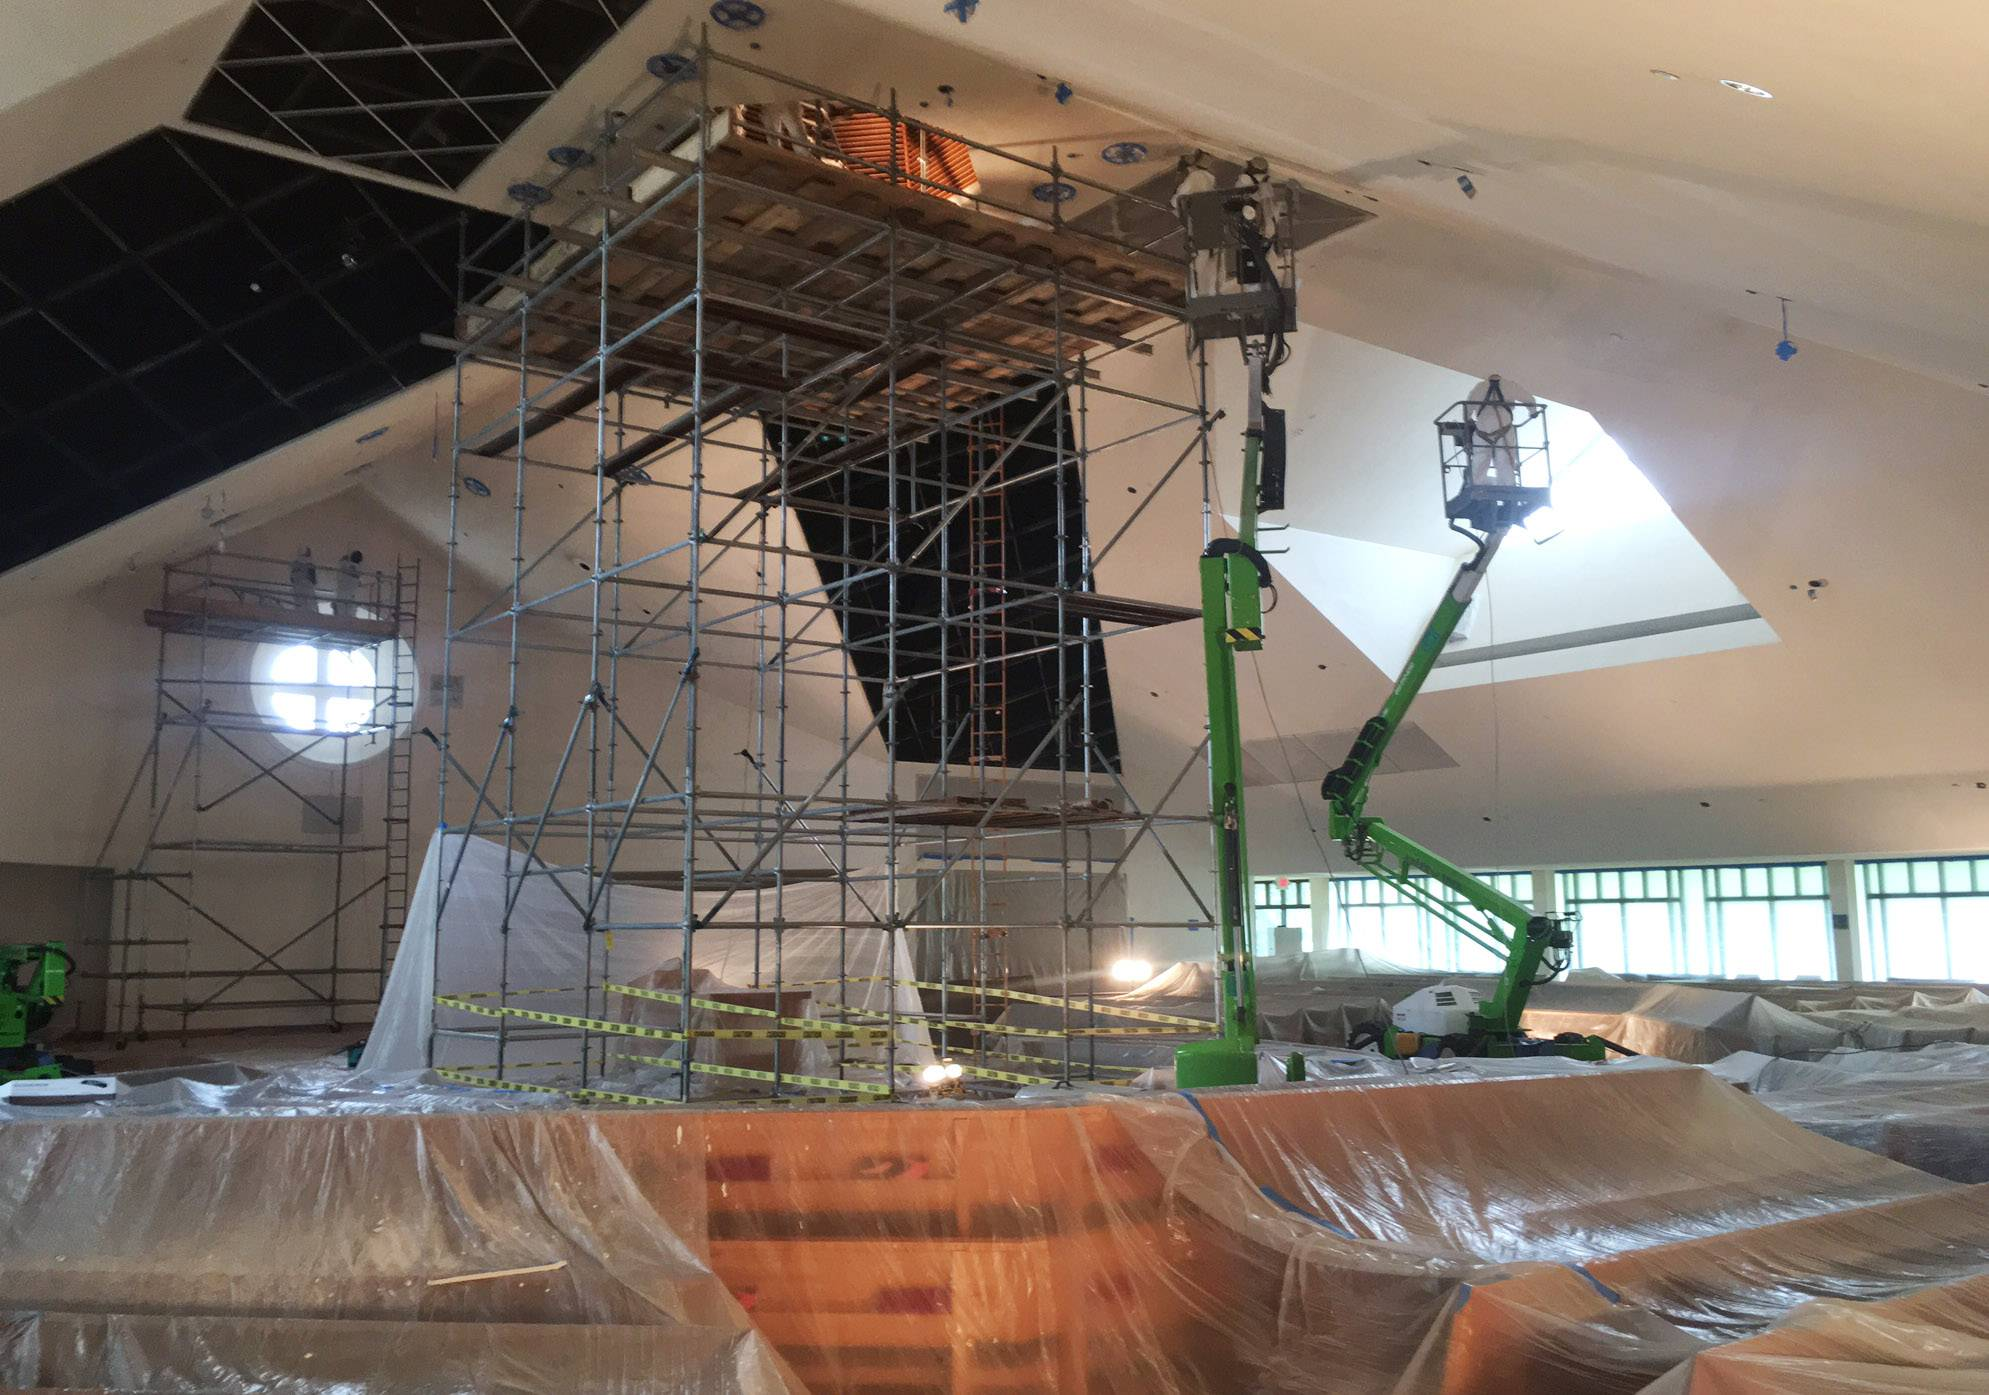 Extensive restoration work is occurring at St. Paul the Apostle Church in Gurnee.